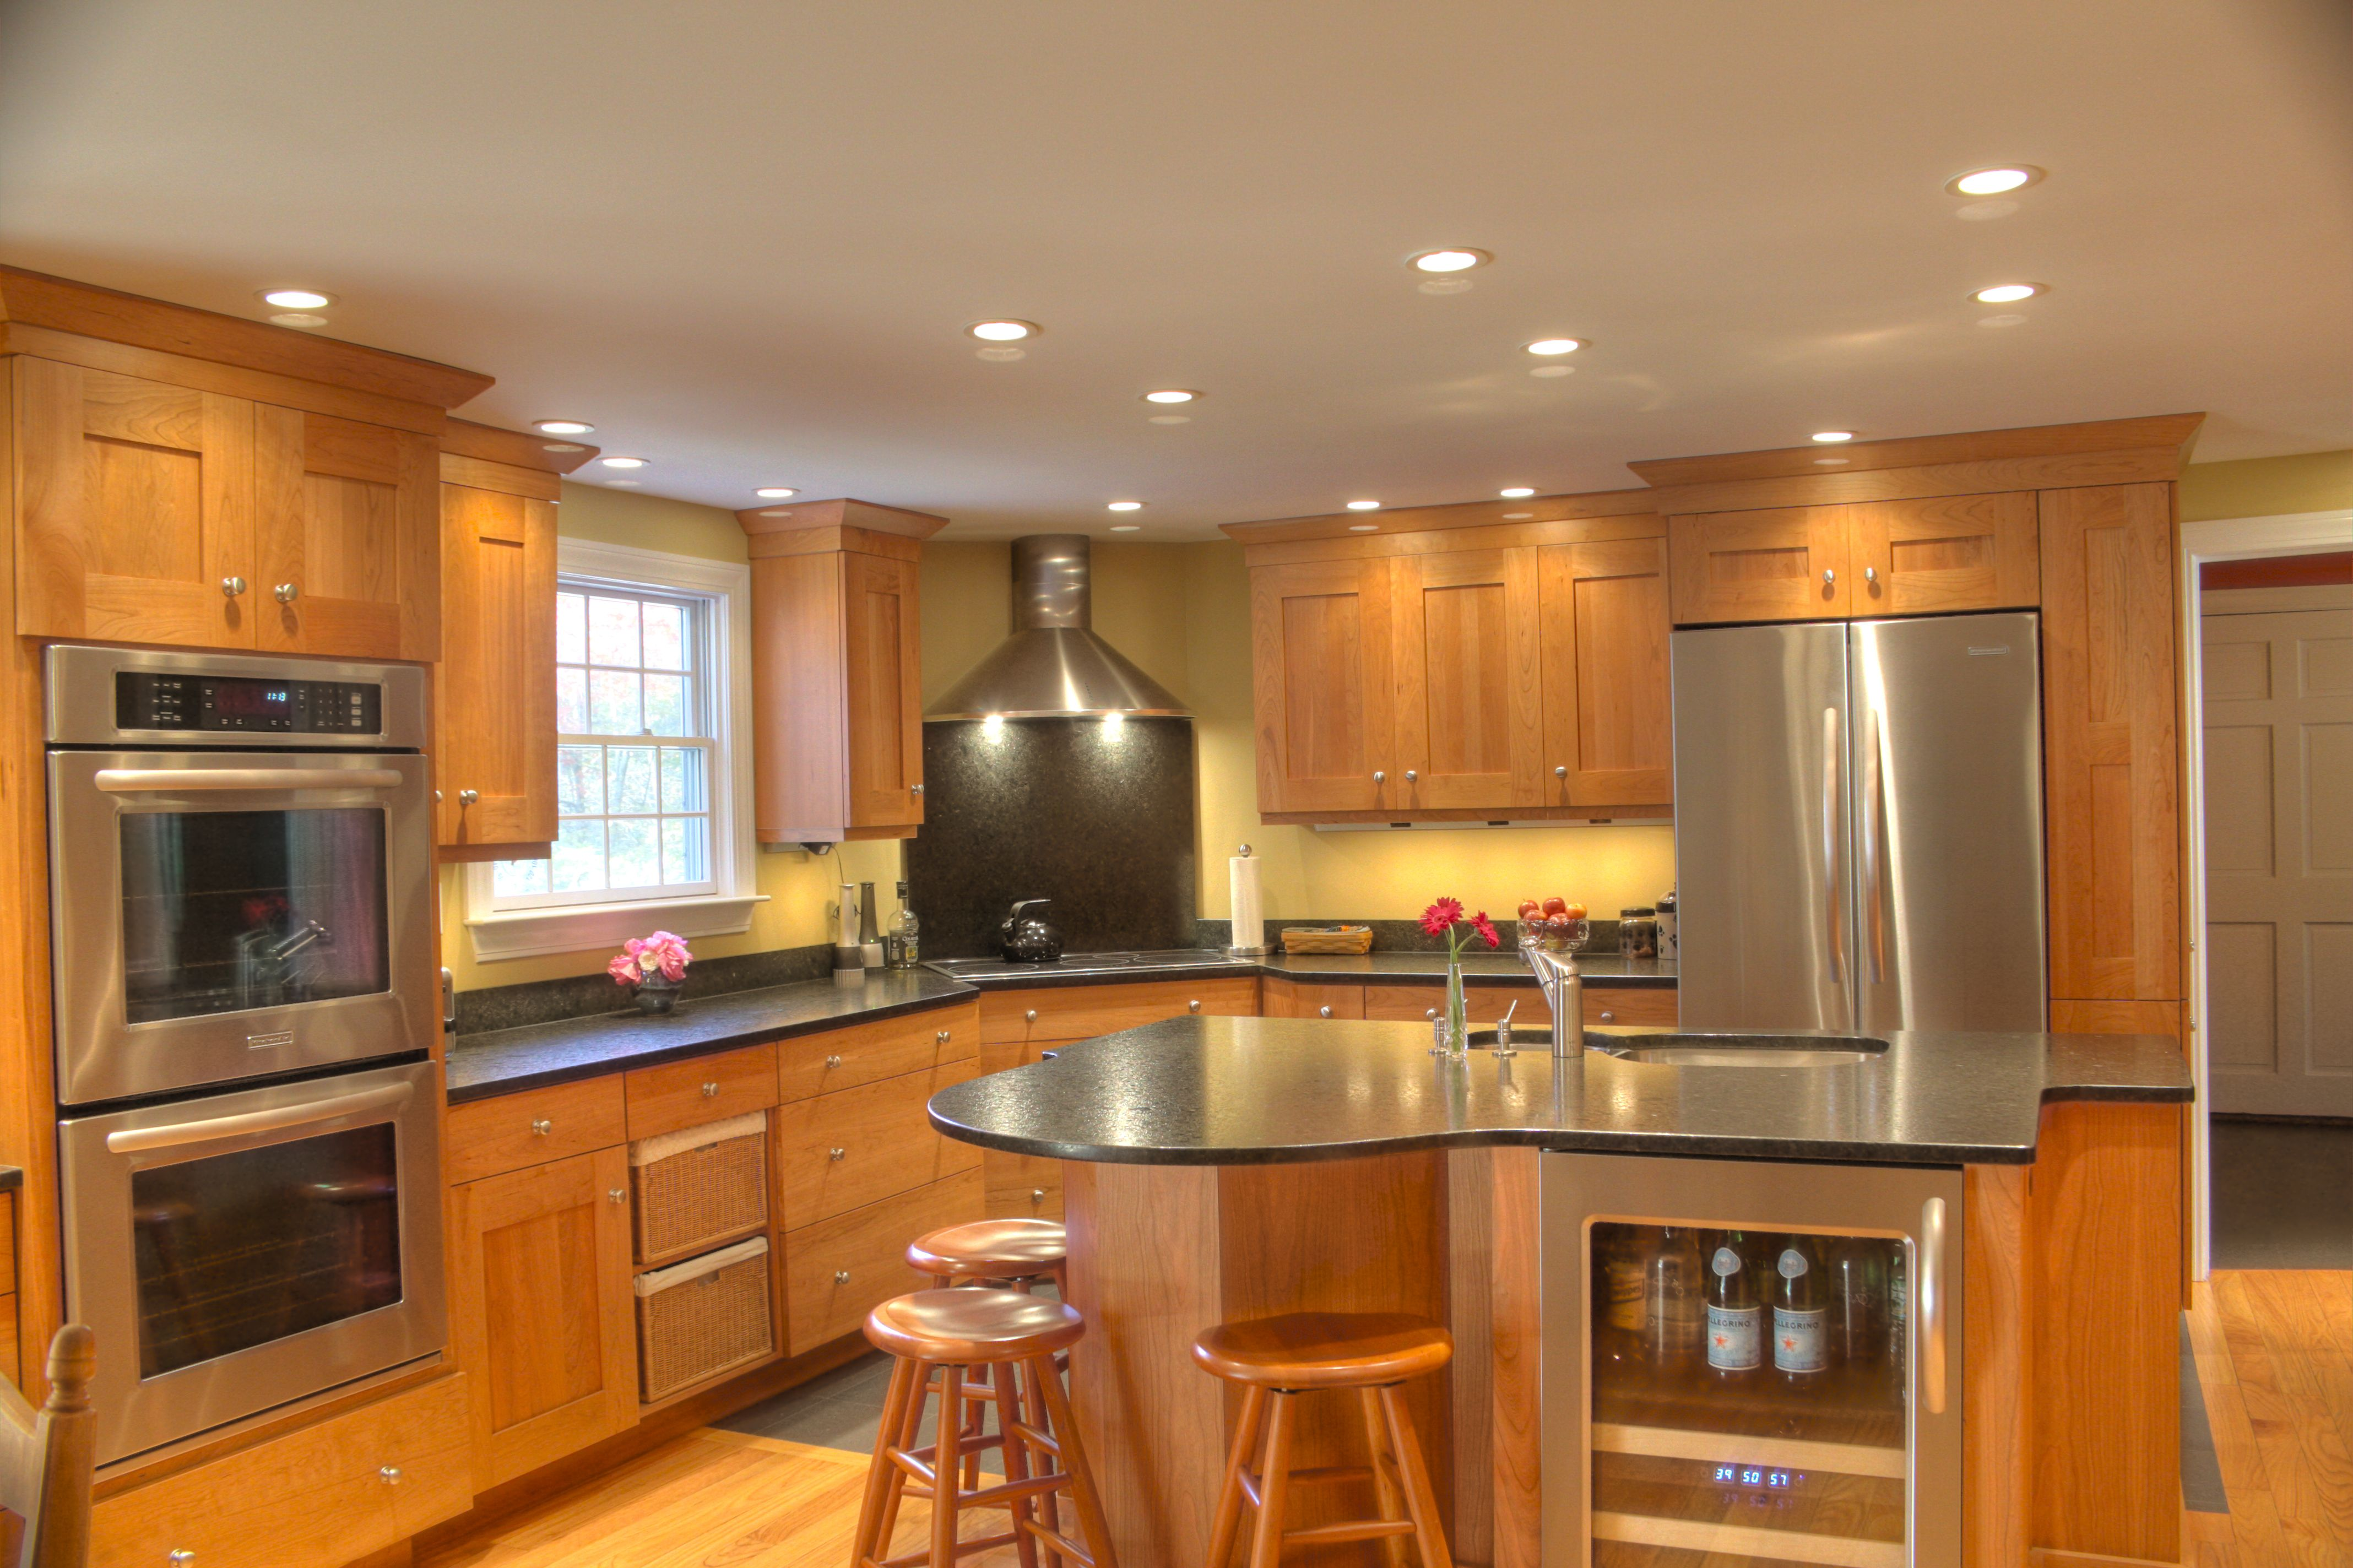 transitional kitchen stainless steel appliances double